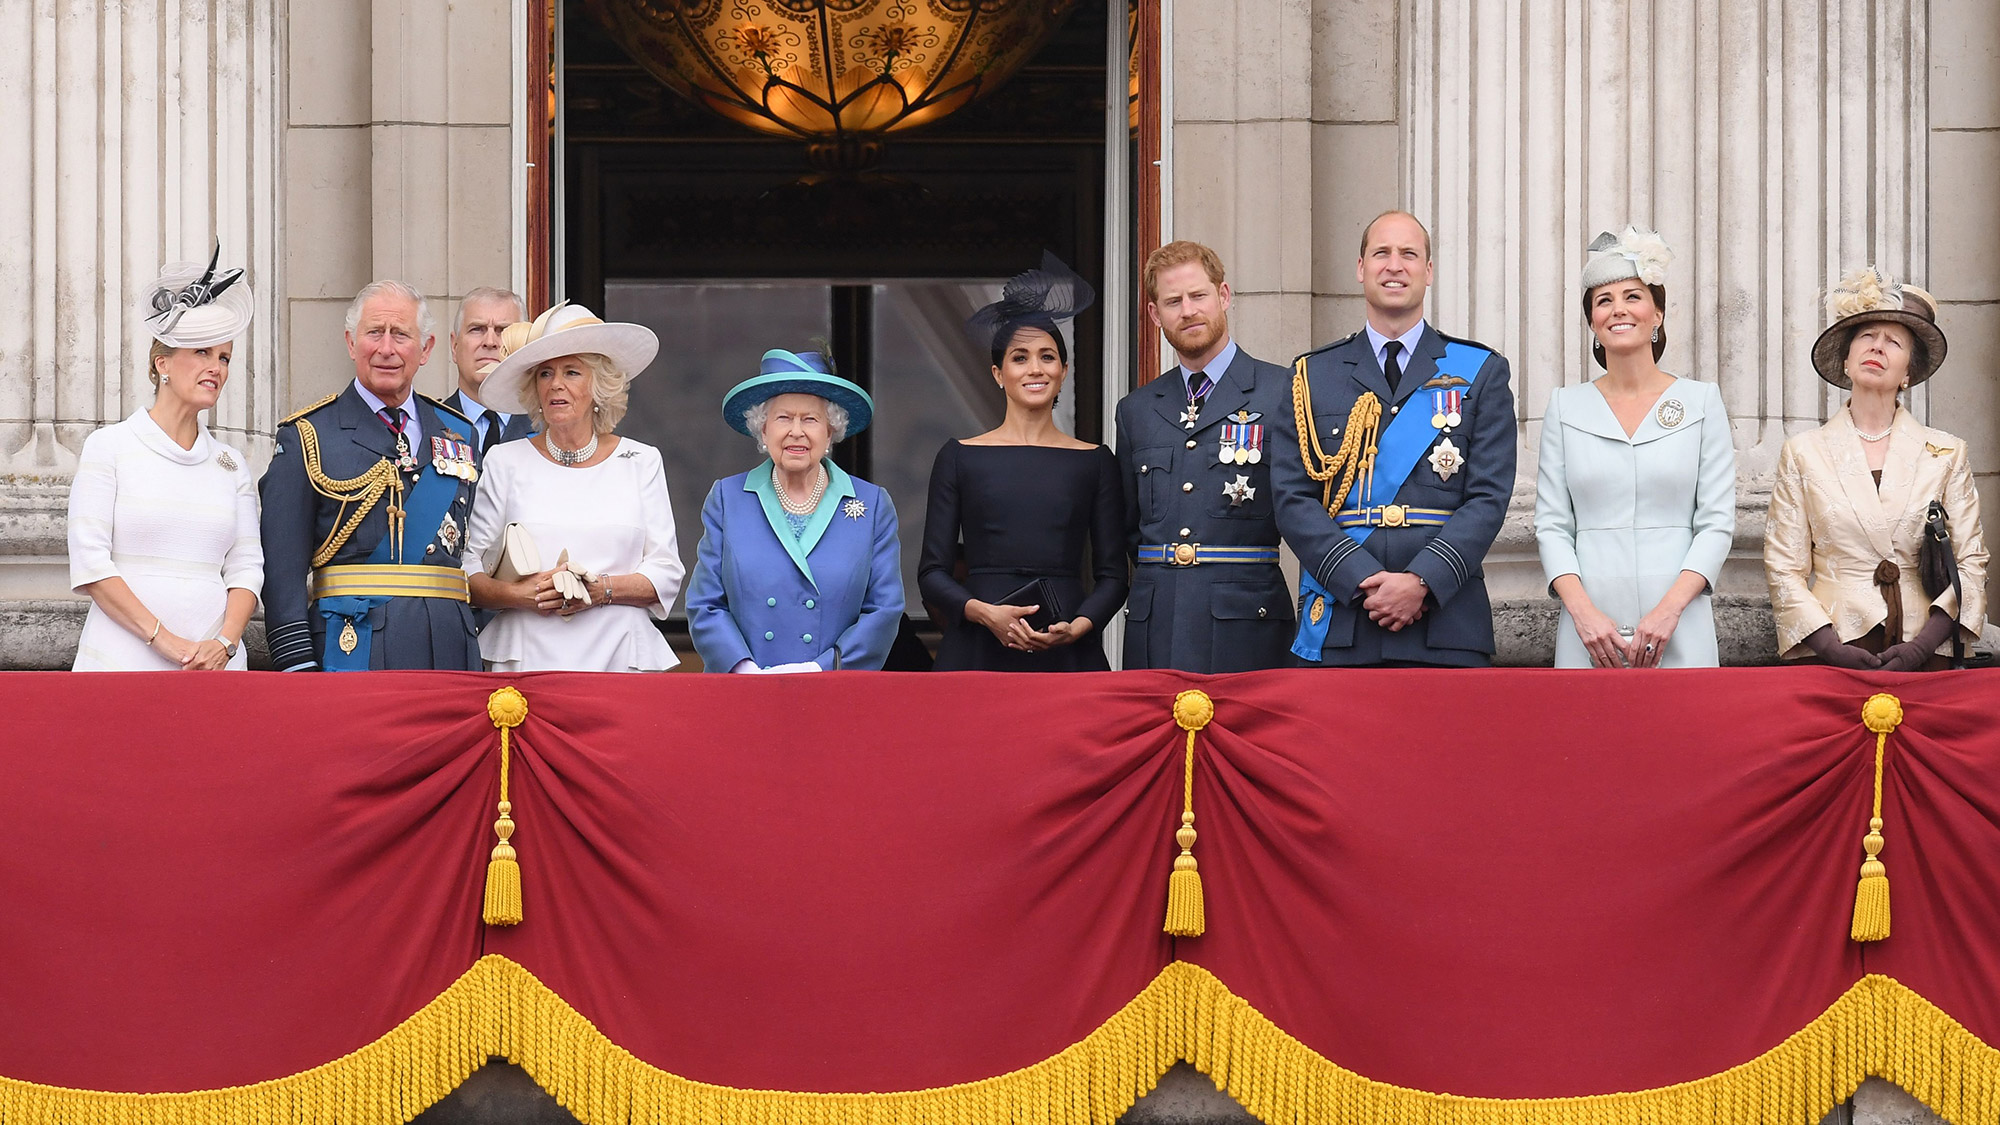 The most popular royals have officially been ranked in order